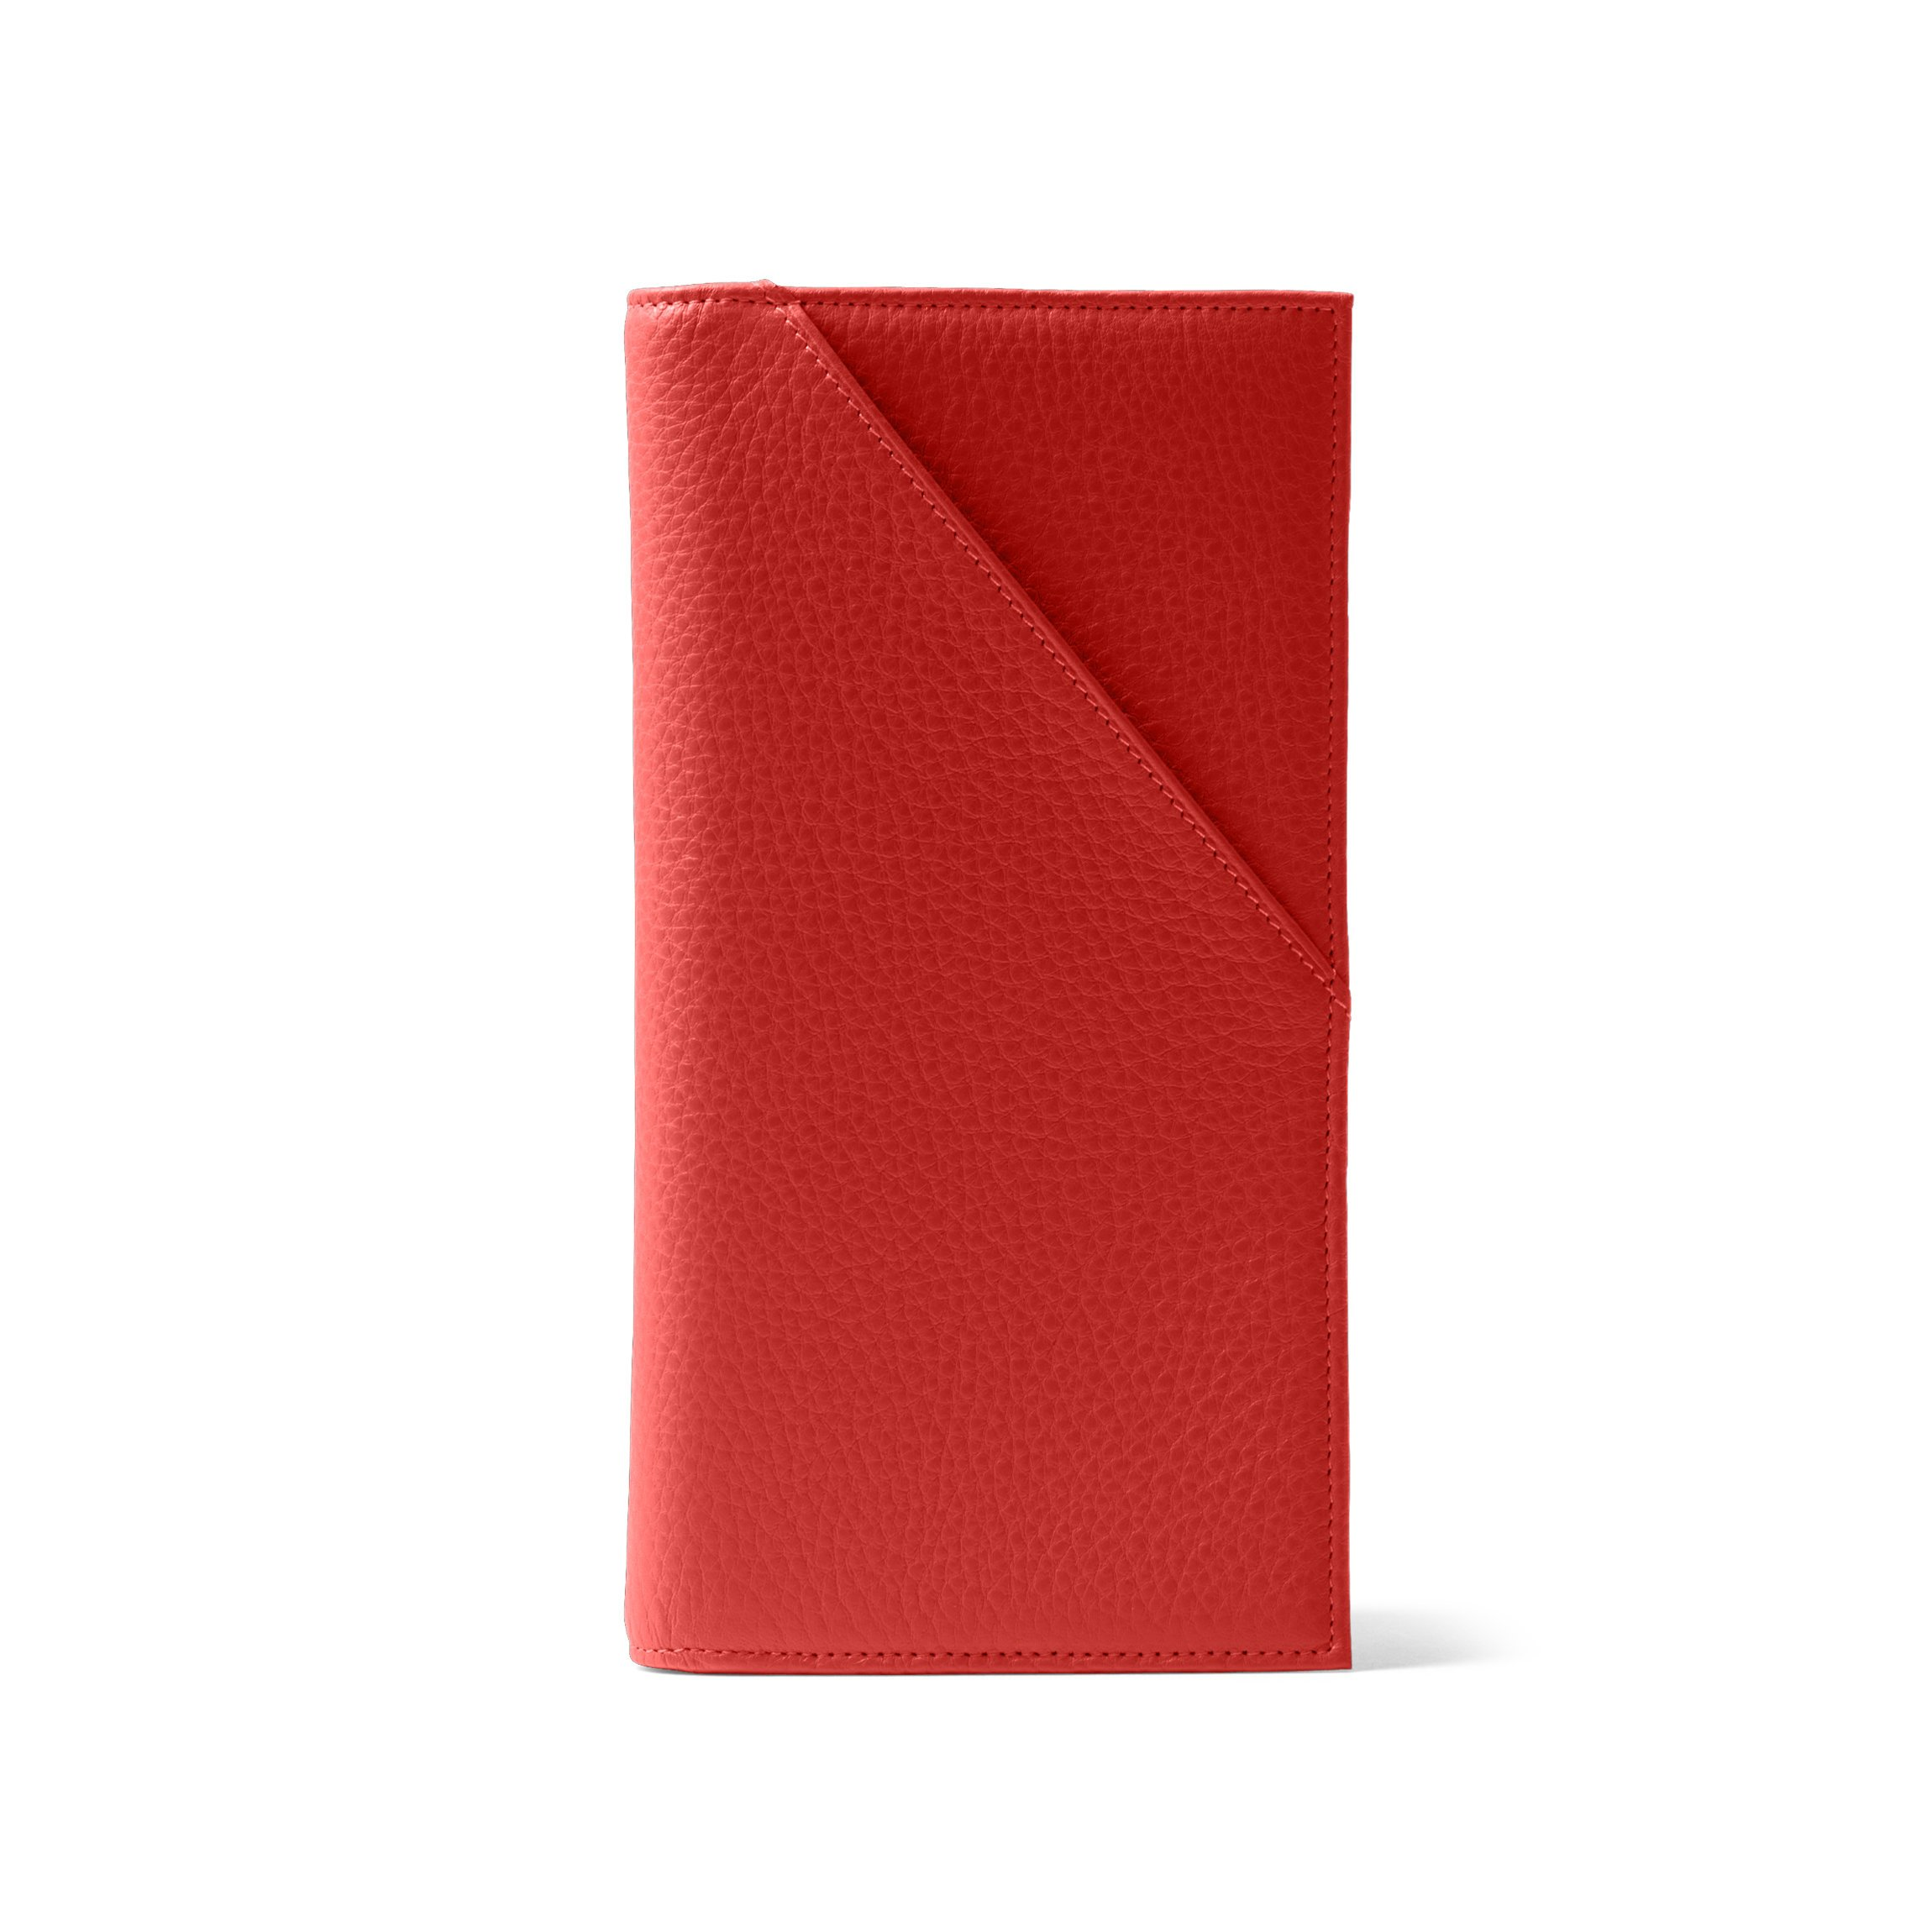 Travel Document Holder - Full Grain Leather Leather - Scarlet (red)